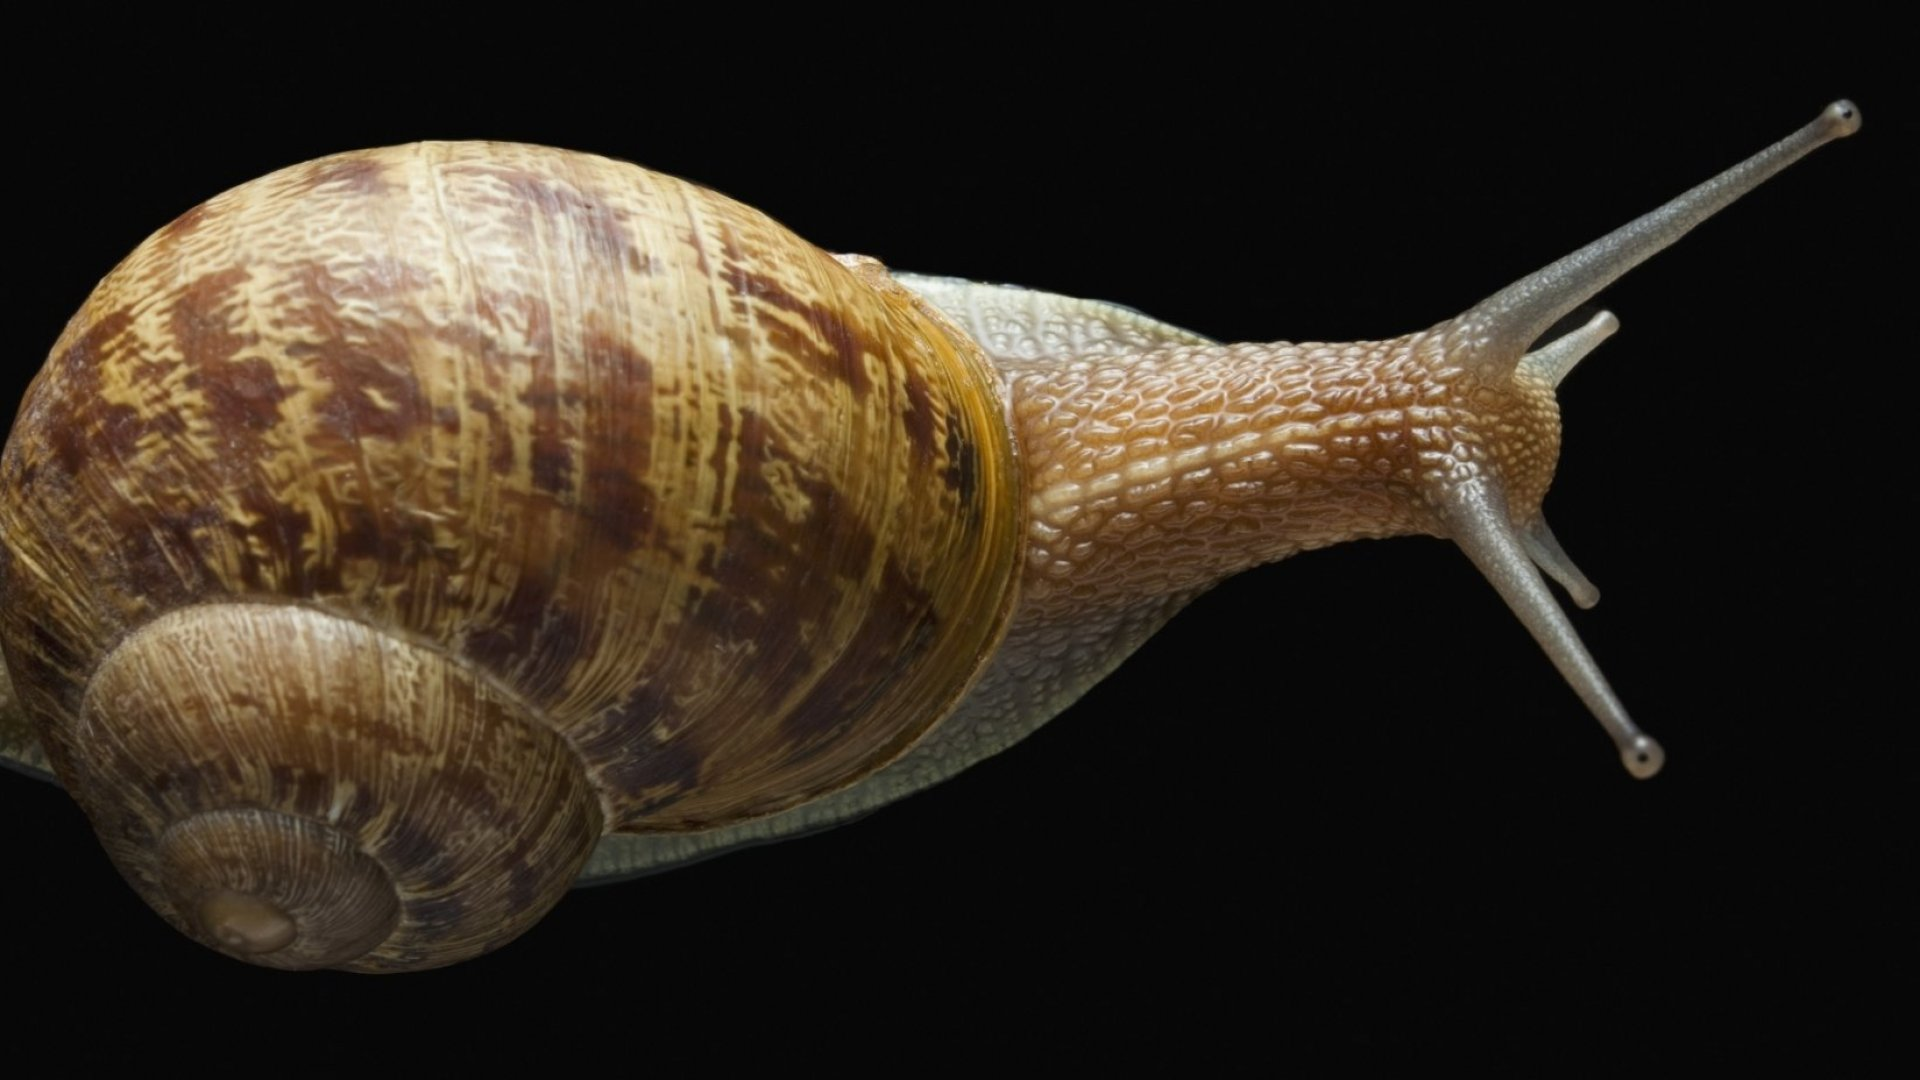 Want to Remember More? This Snail Study Shows 1 Thing Will Help You Retain Information